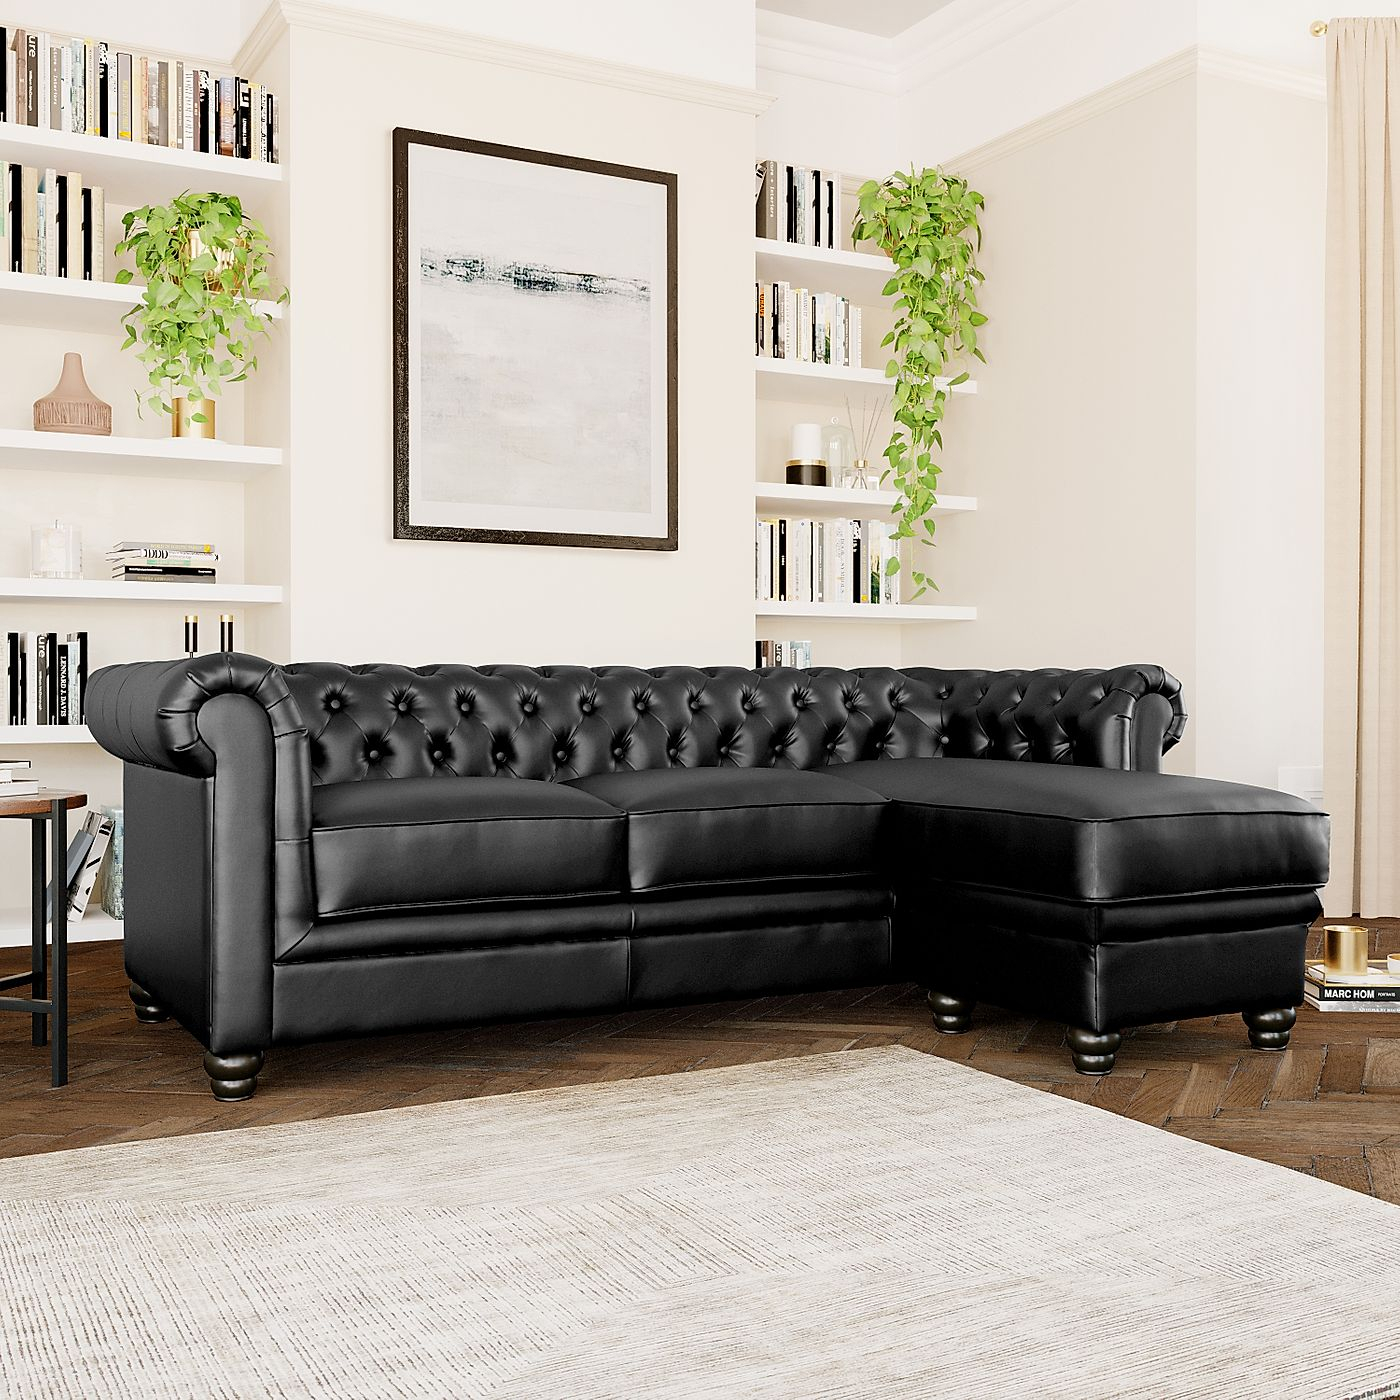 Hampton Black Leather L Shape Chesterfield Corner Sofa Throughout Leather Corner Sofas (View 4 of 15)